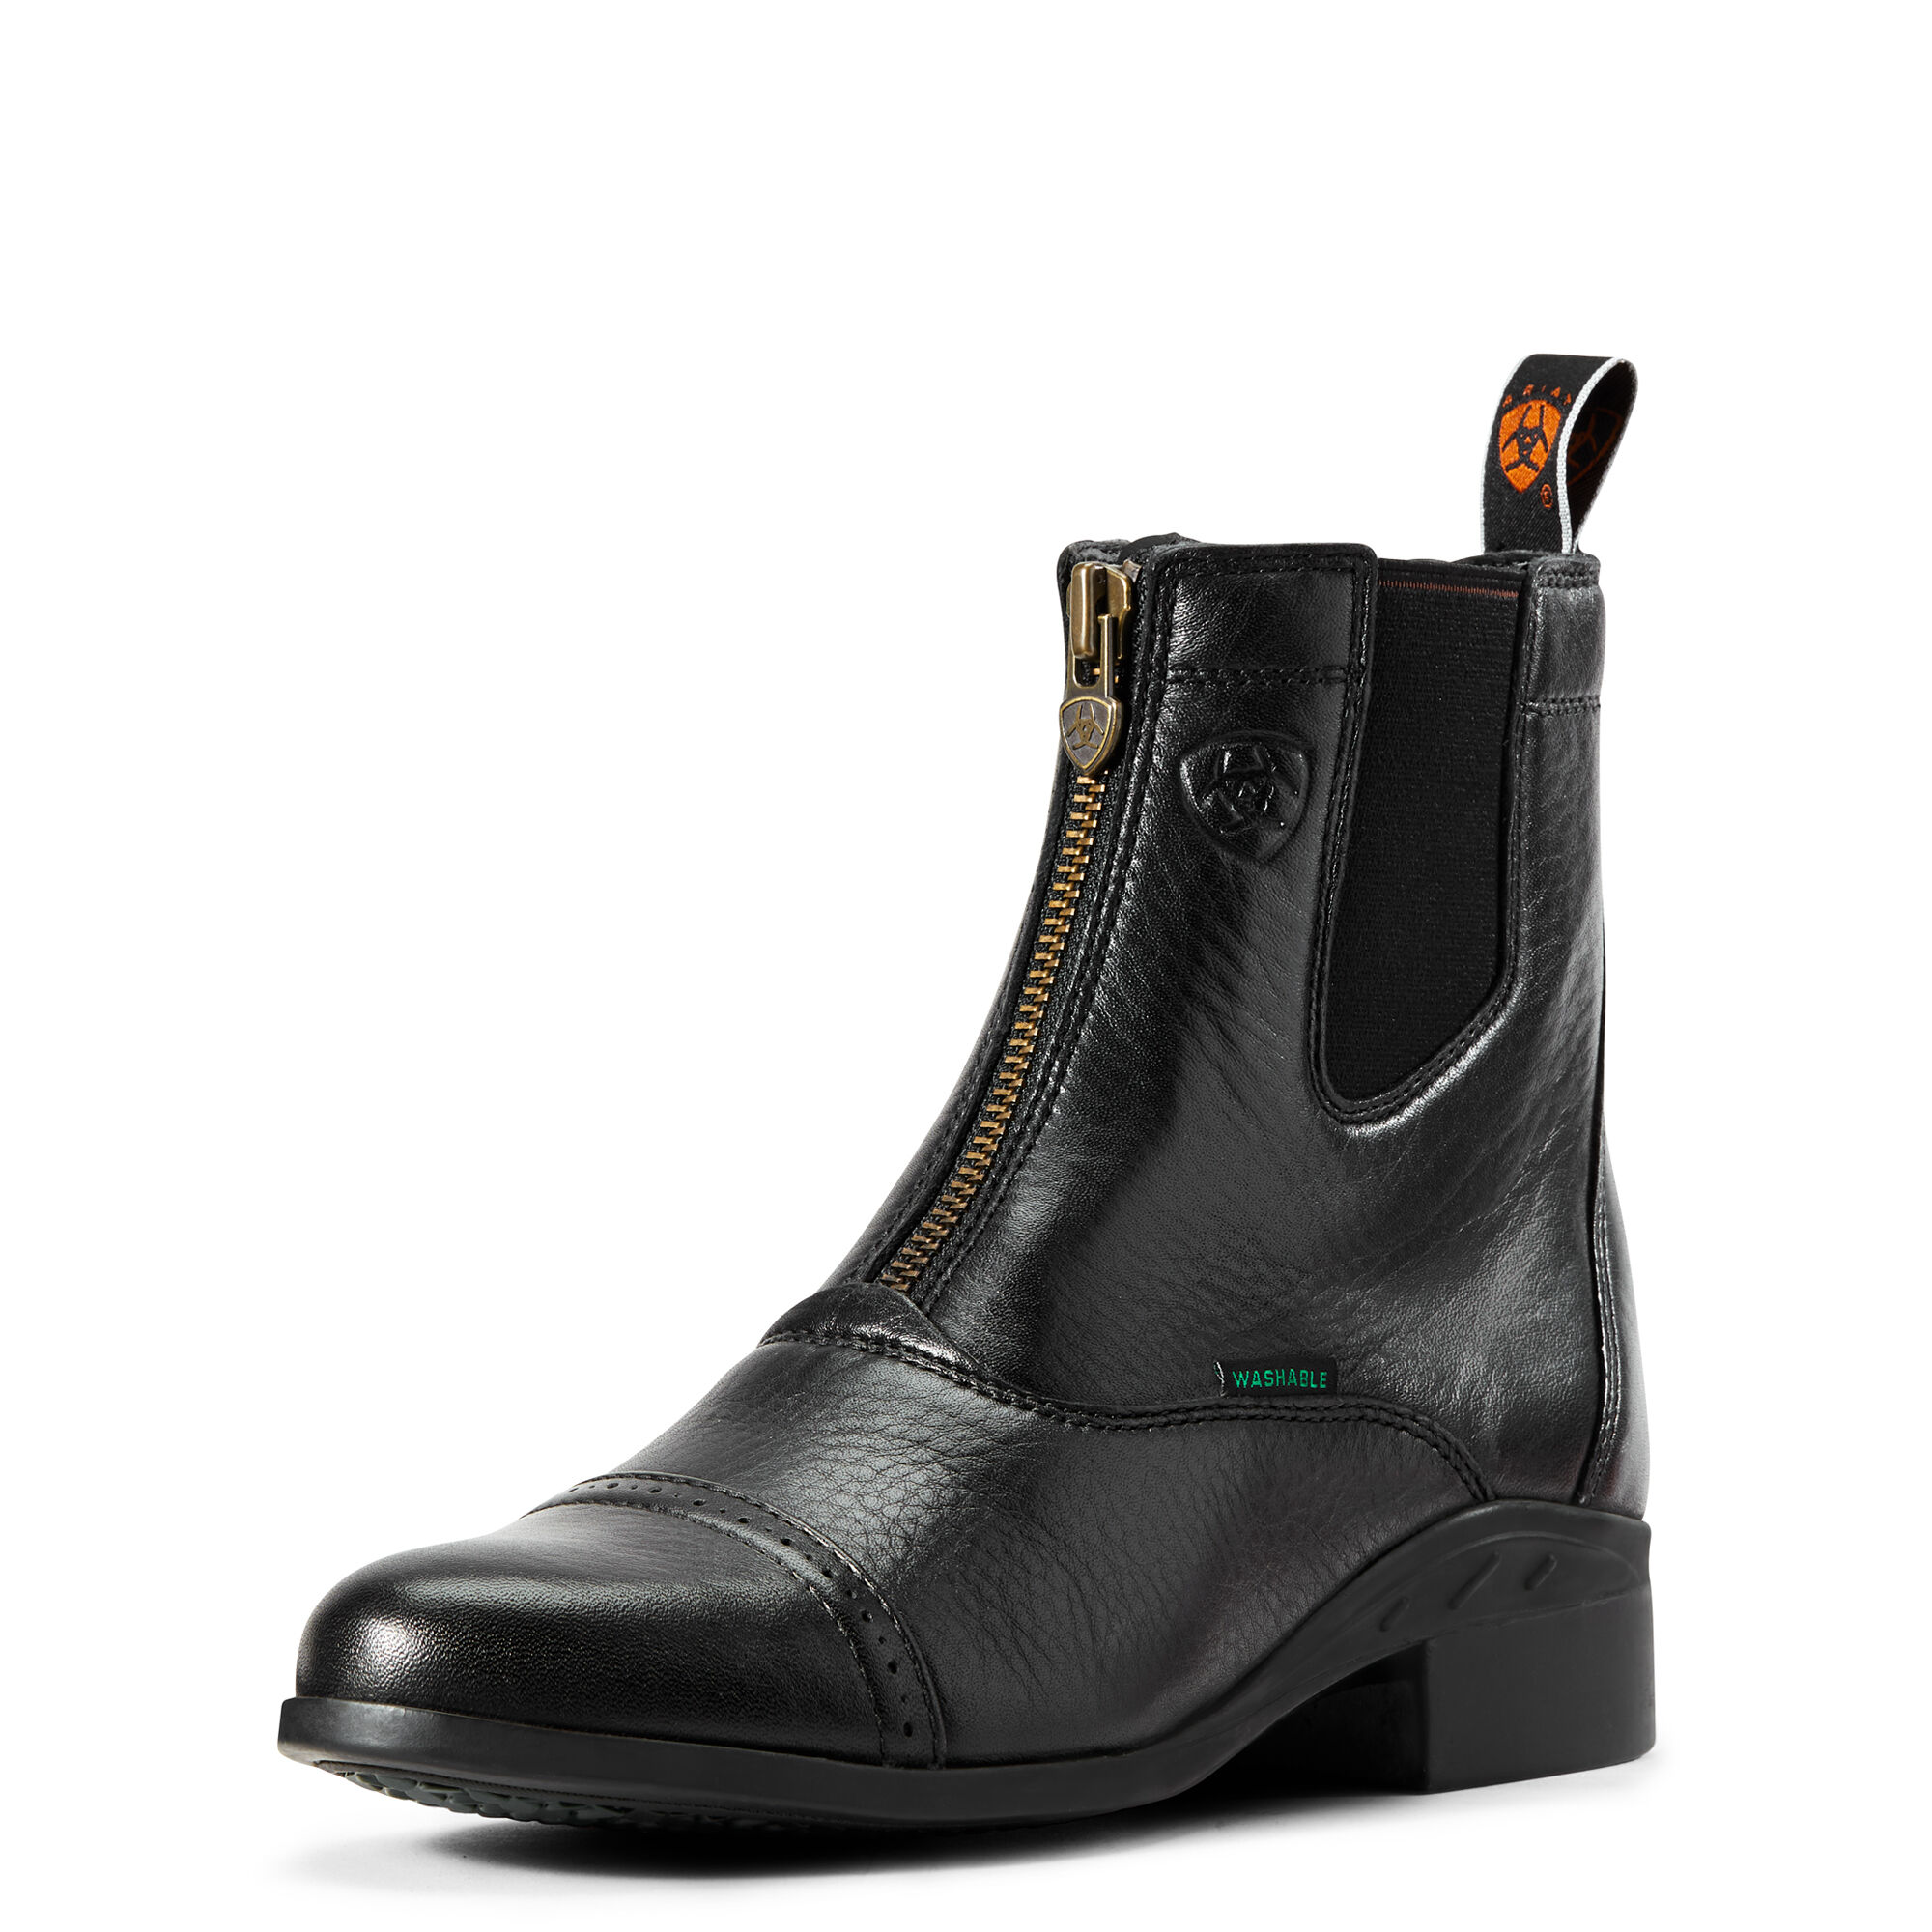 Women's Heritage Breeze Zip Paddock Paddock Boots in Black Leather by Ariat